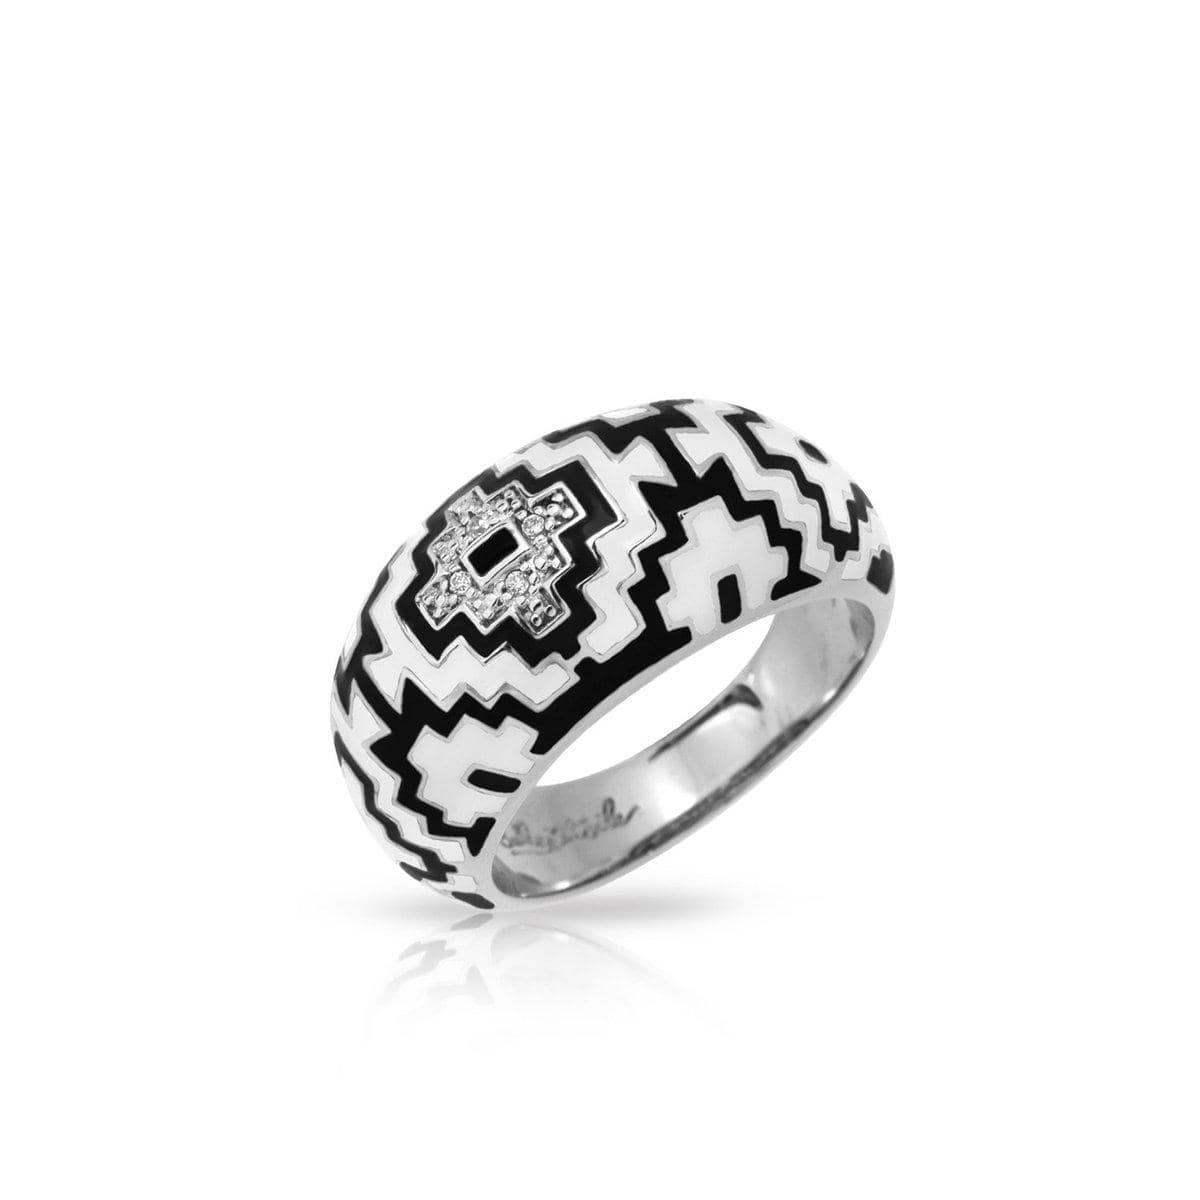 Aztec Black and White Ring-Belle Etoile-Renee Taylor Gallery